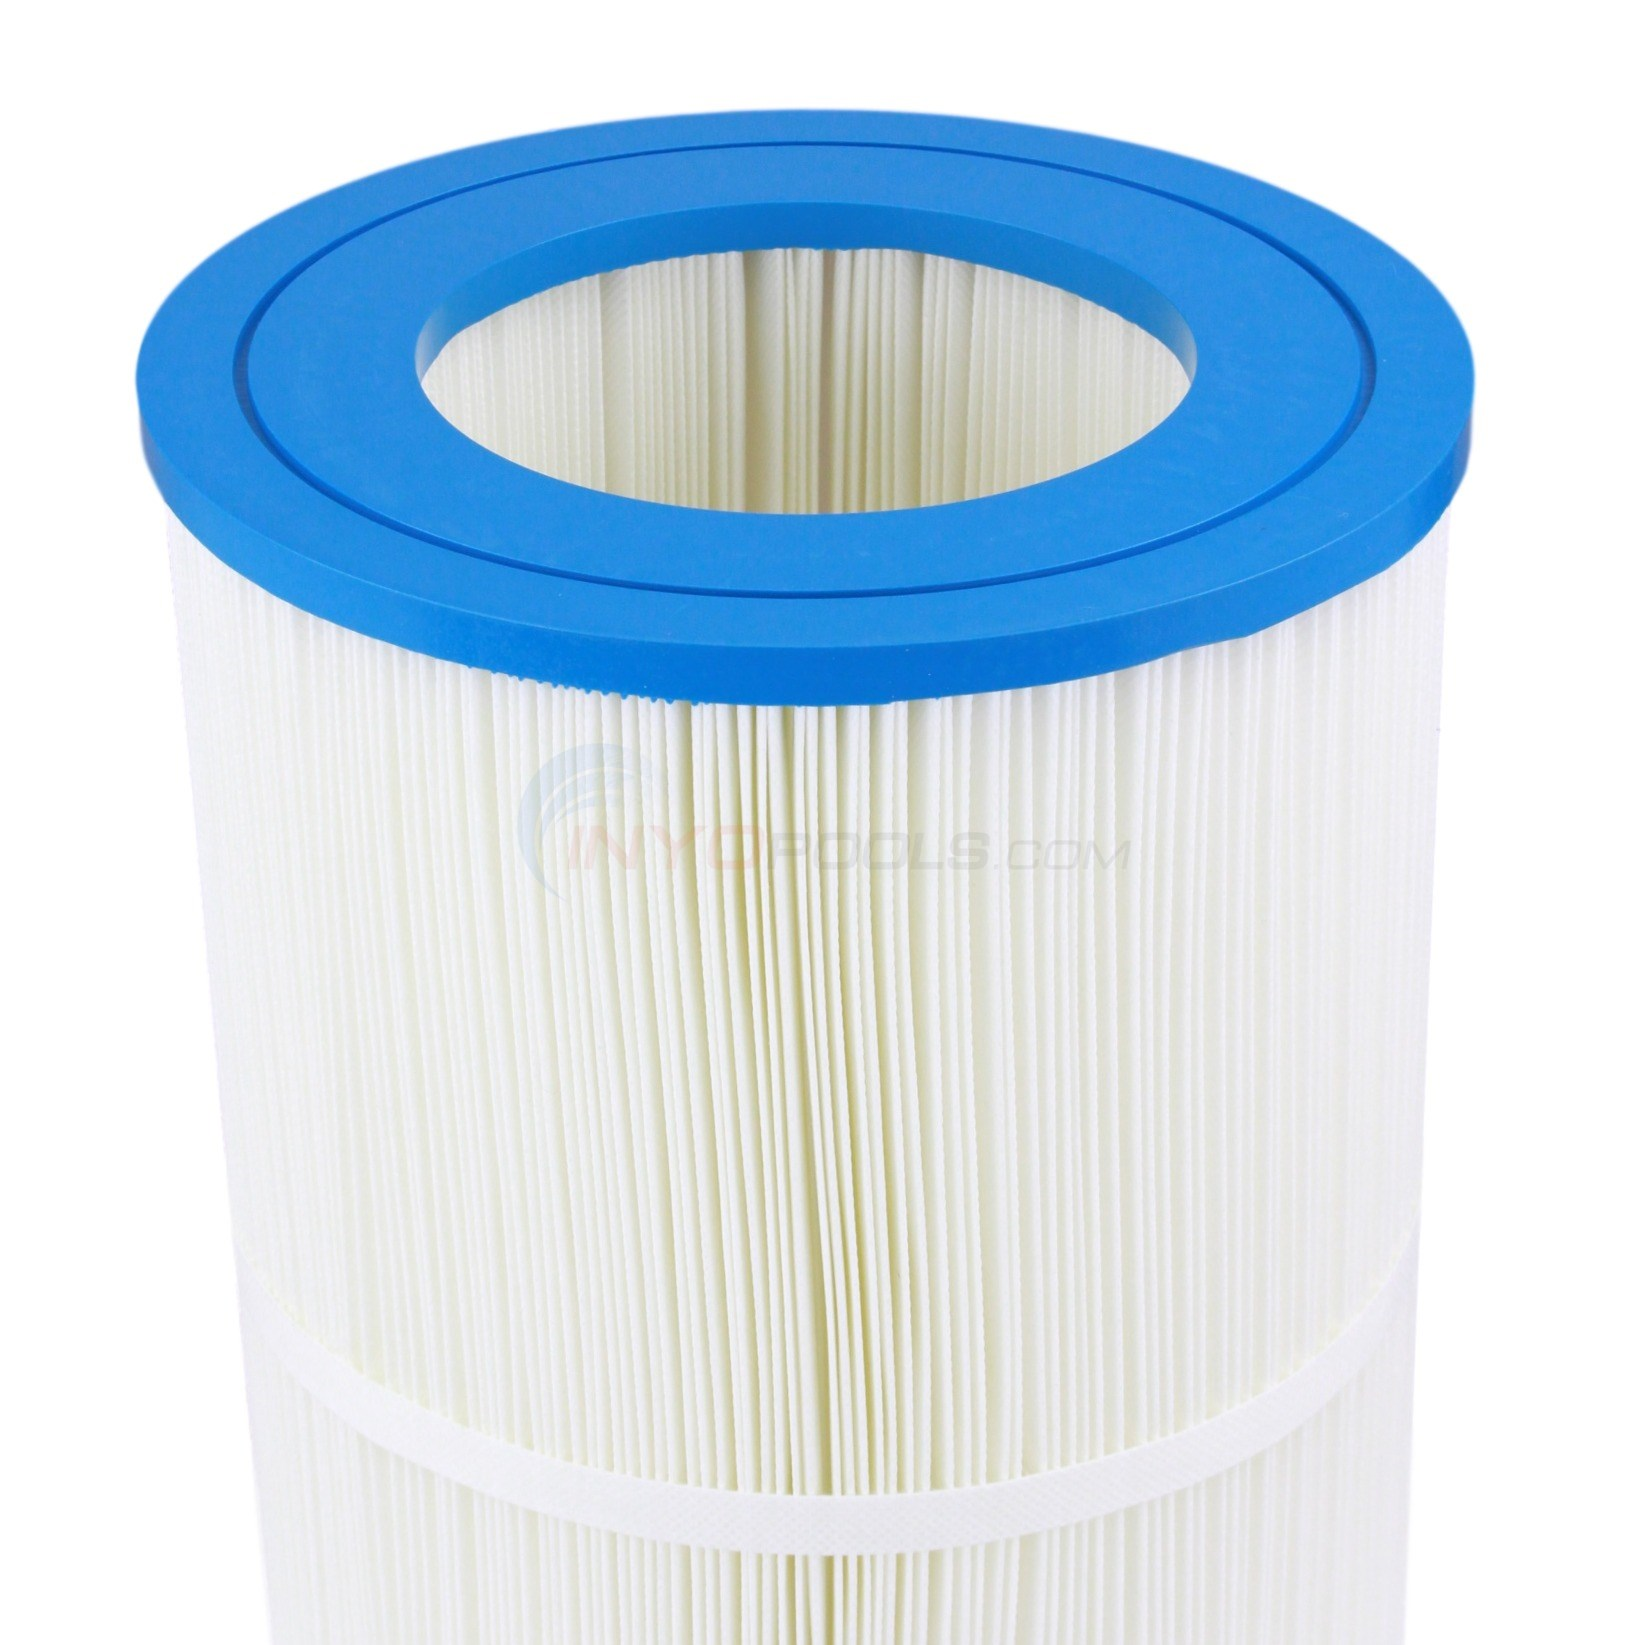 PureLine Jacuzzi CFR 75 Replacement Cartridge - PL0154